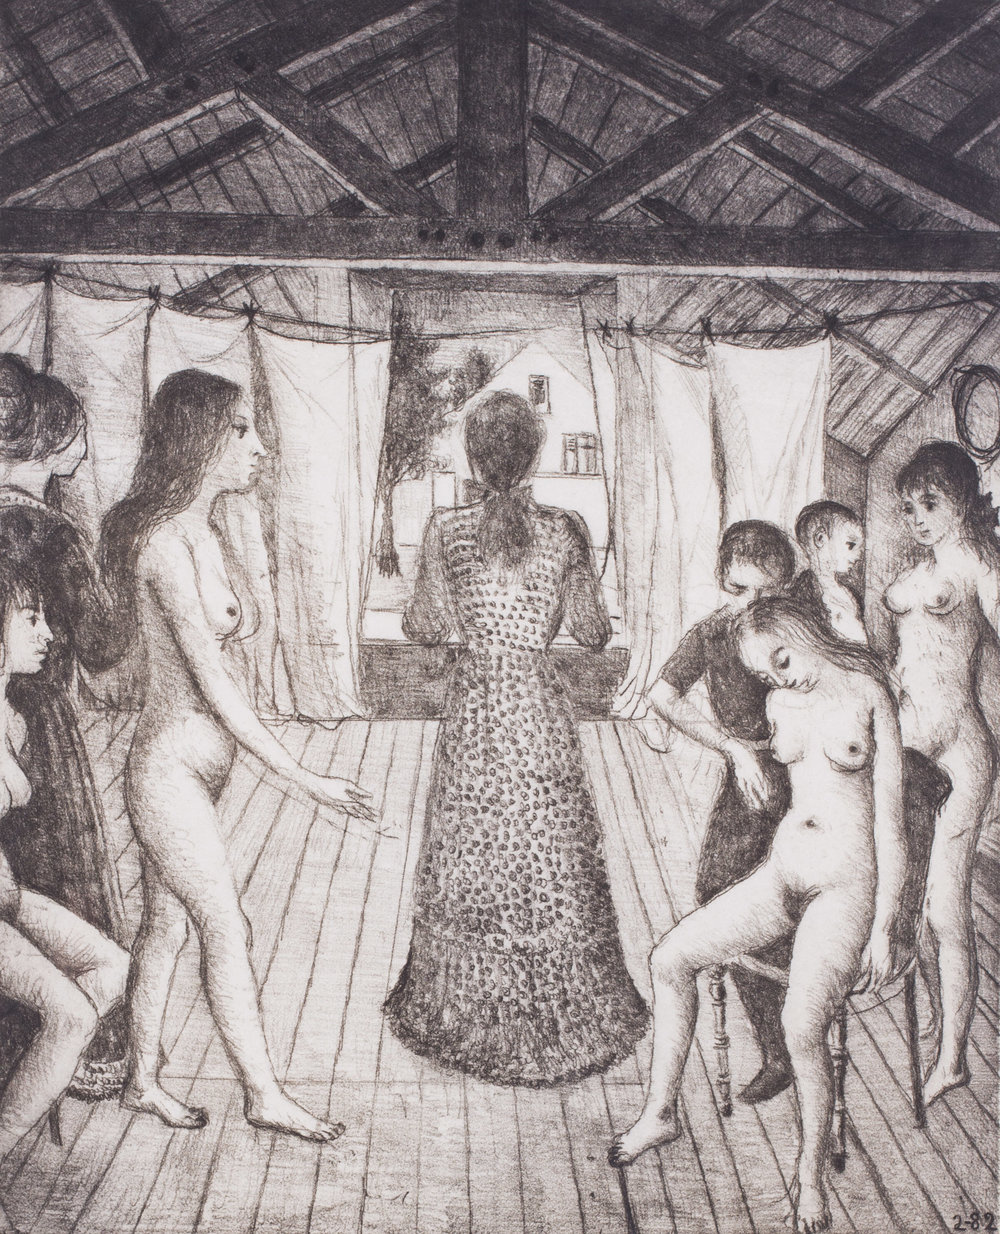 Paul Delvaux (Belgian, 1897 – 1994)     Le Grenier, 1982    Soft-ground etching   Signed and inscribed EA in pencil   48 x 38.7 cm.   Provenance: De Vuyst Gallery, Belgium   Price: £2,400